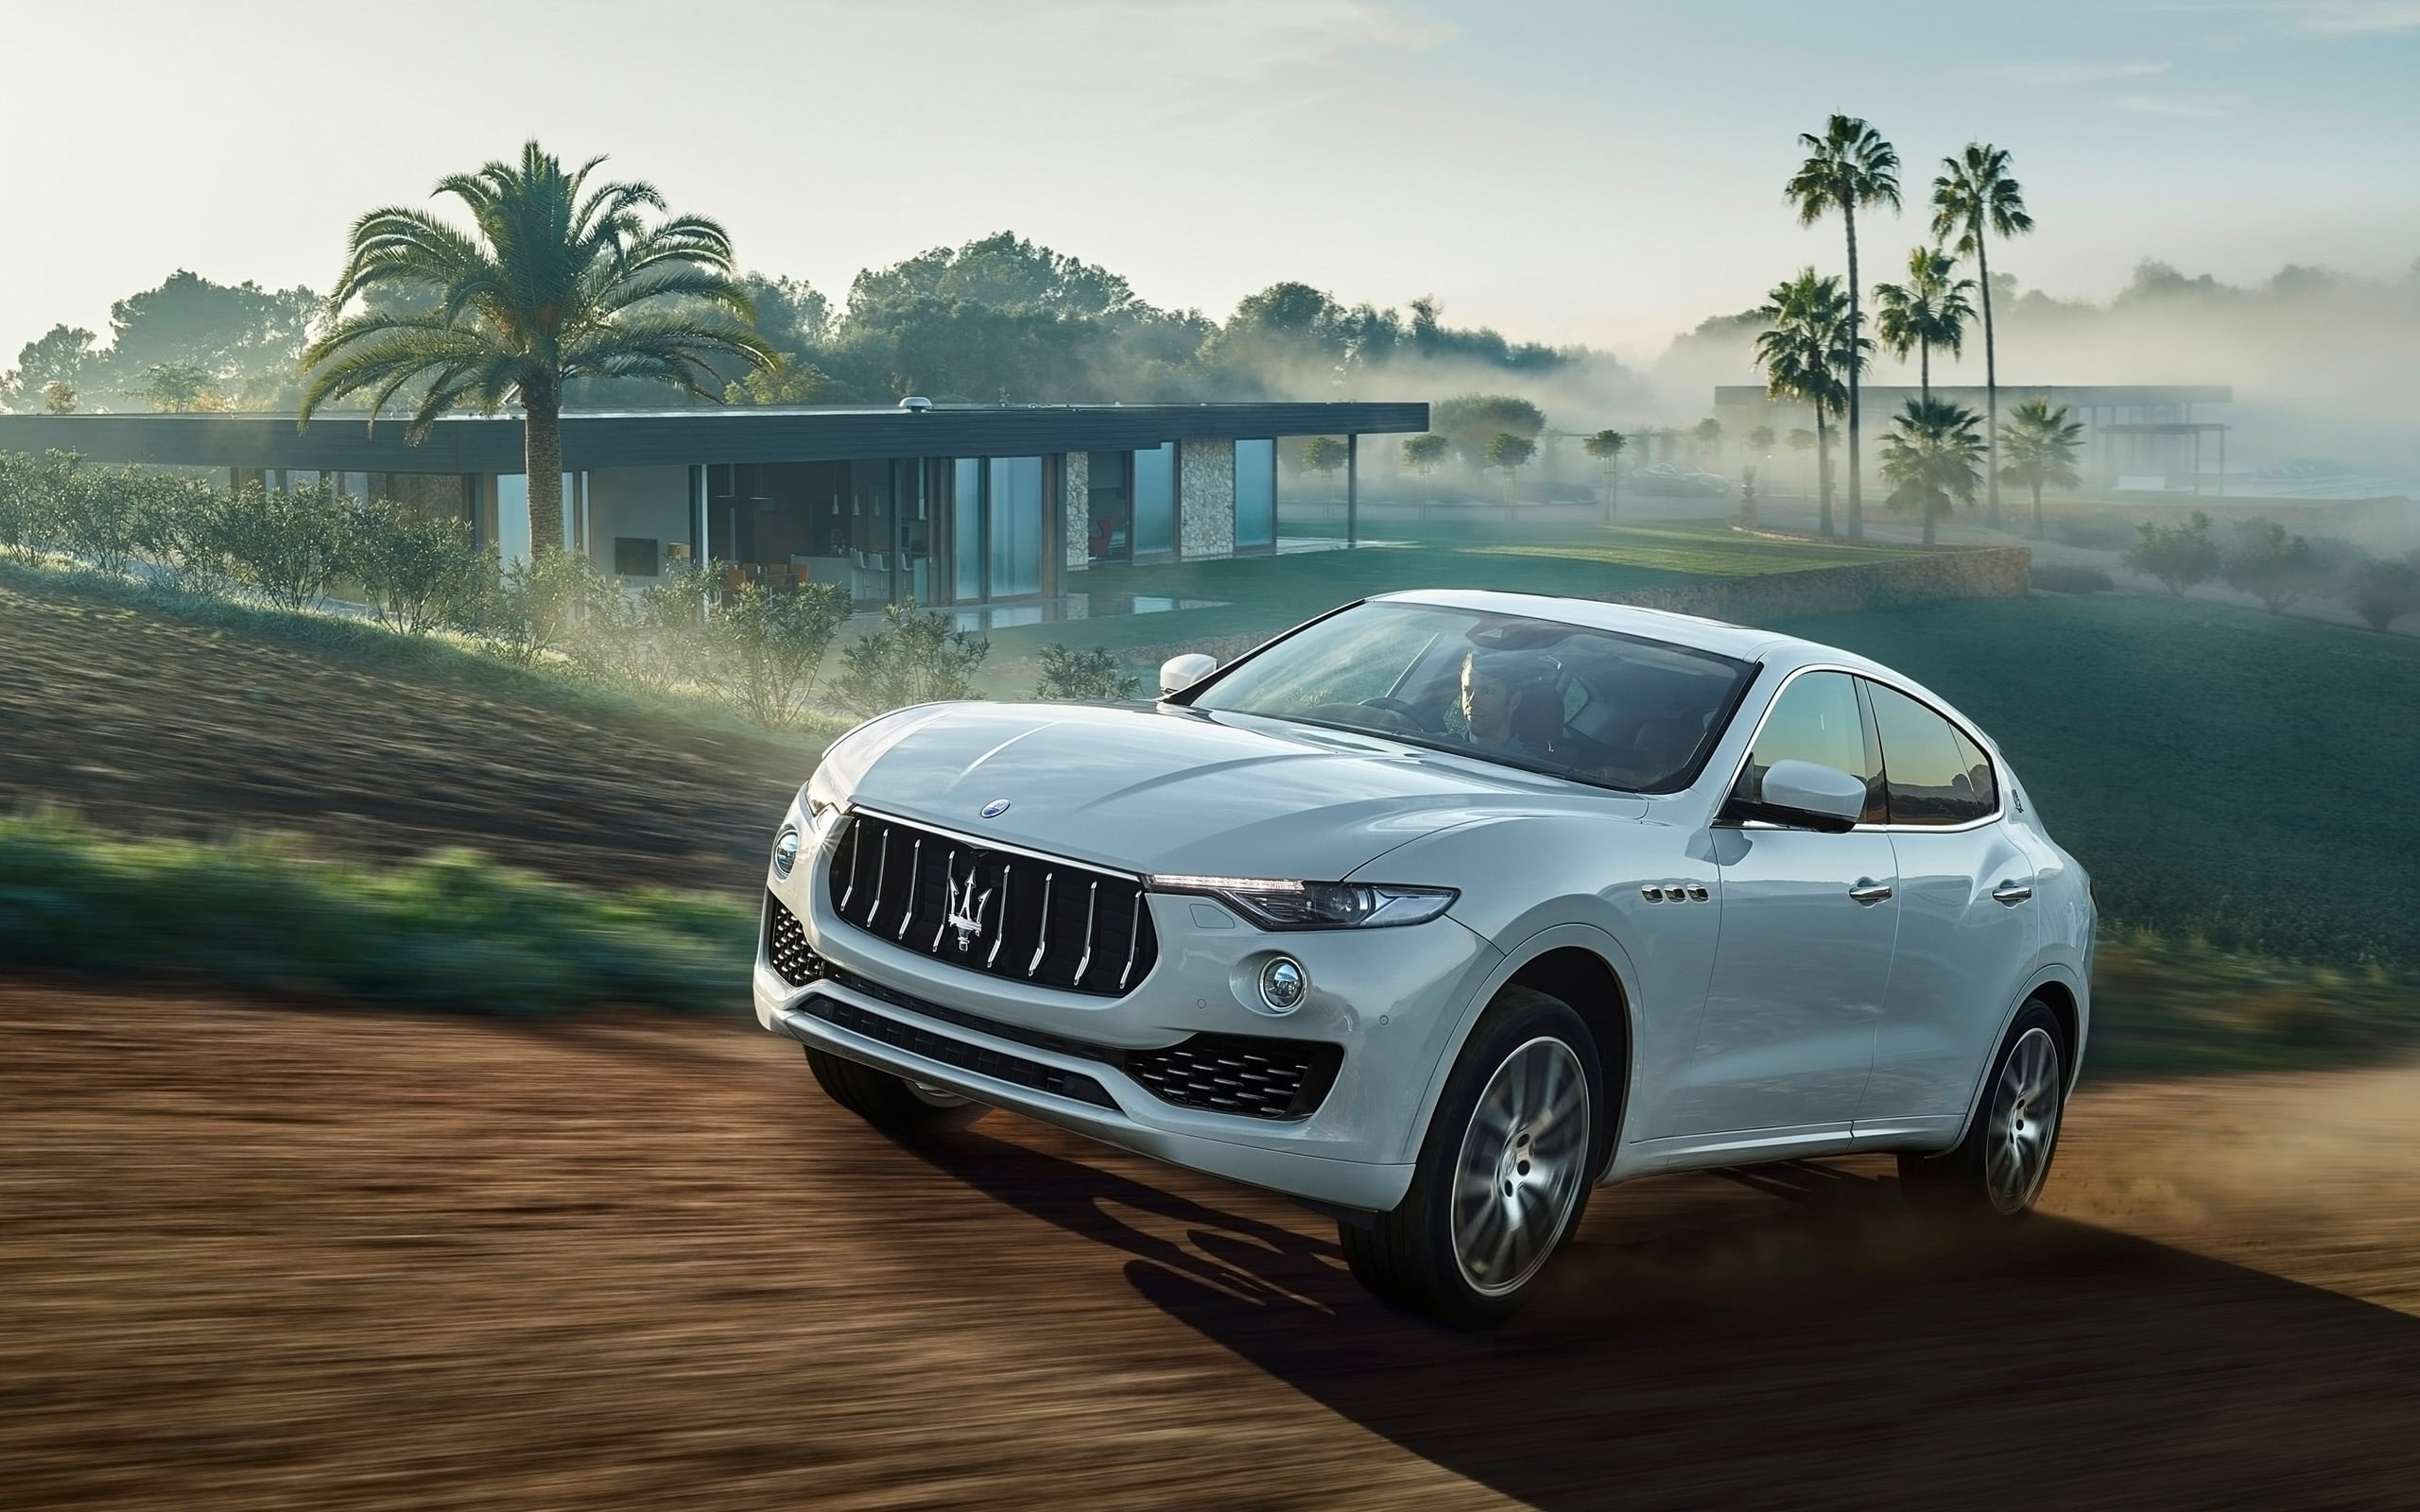 Maserati Levante Wallpapers and Background Images   stmednet 2560x1600